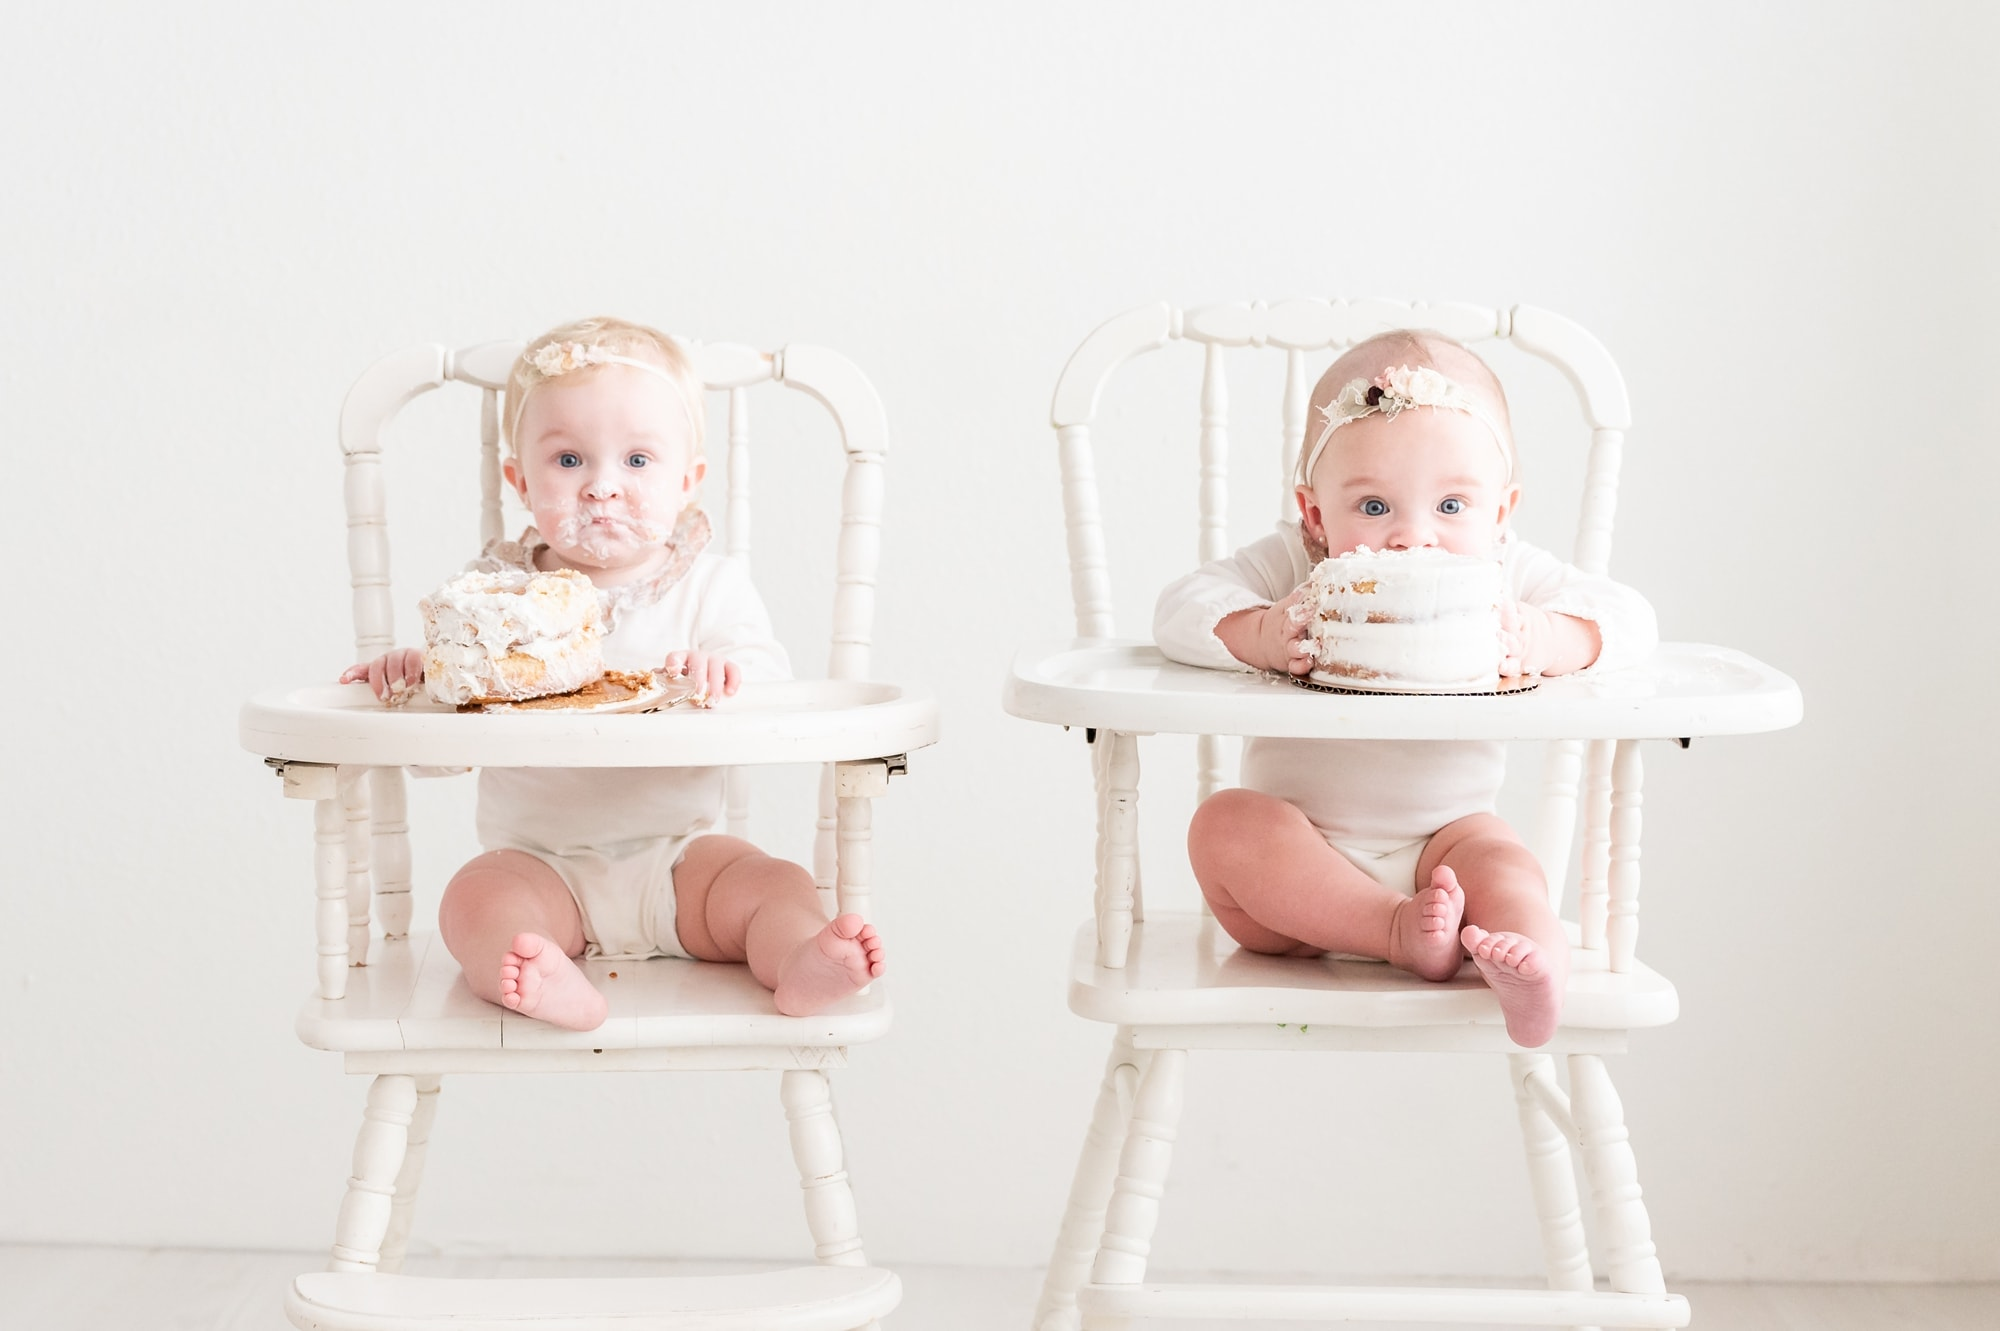 Twins making adorable expressions during cake smash milestone session by Dallas photographer, Aimee Hamilton Photography.